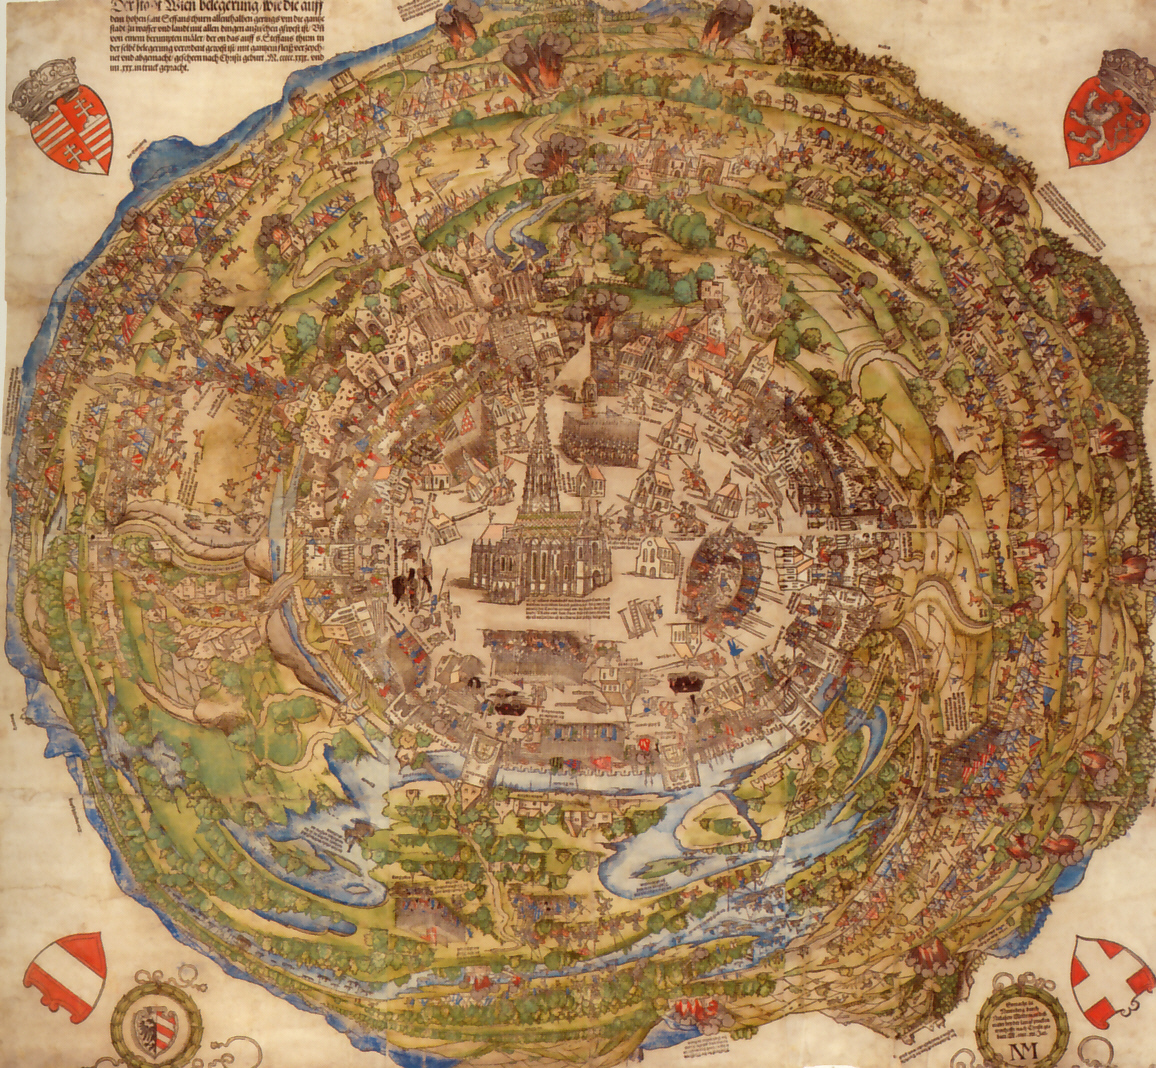 Circular map of Vienna, with St. Stephen's Cathedral at the center